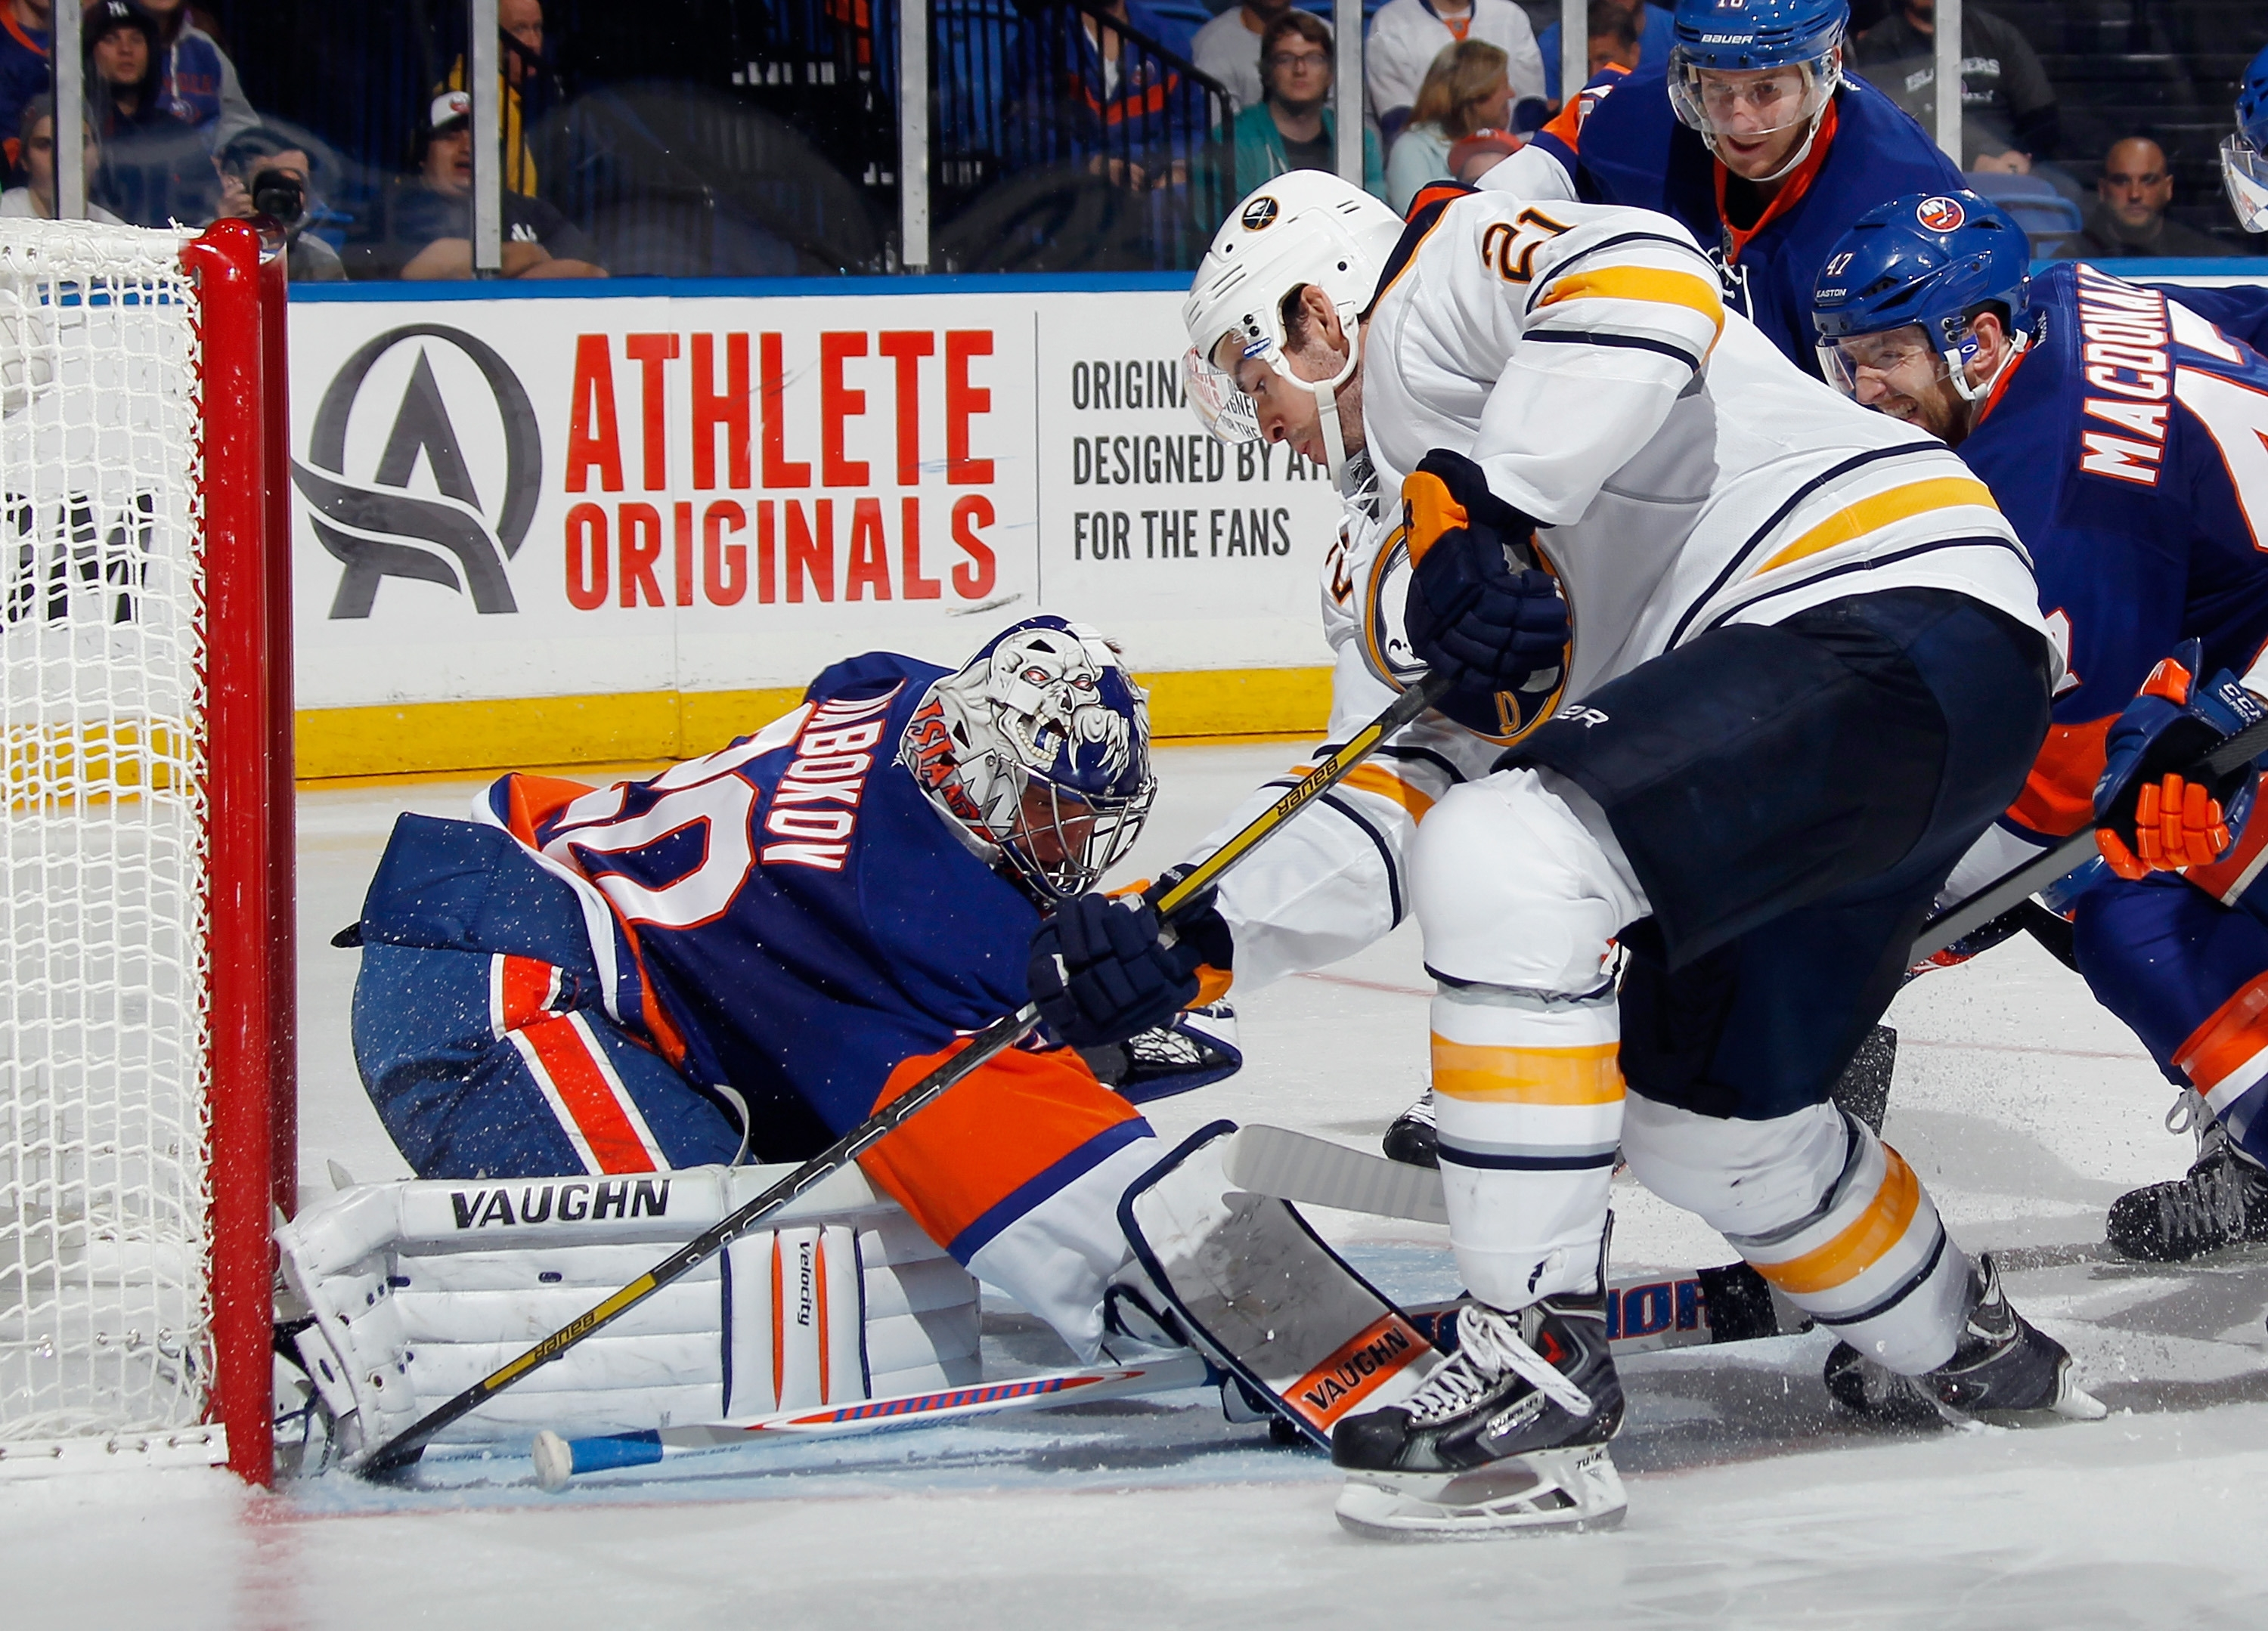 Evgeni Nabokov of the New York Islanders makes a third-period save on Drew Stafford, who went around the defense and took the puck to the net.